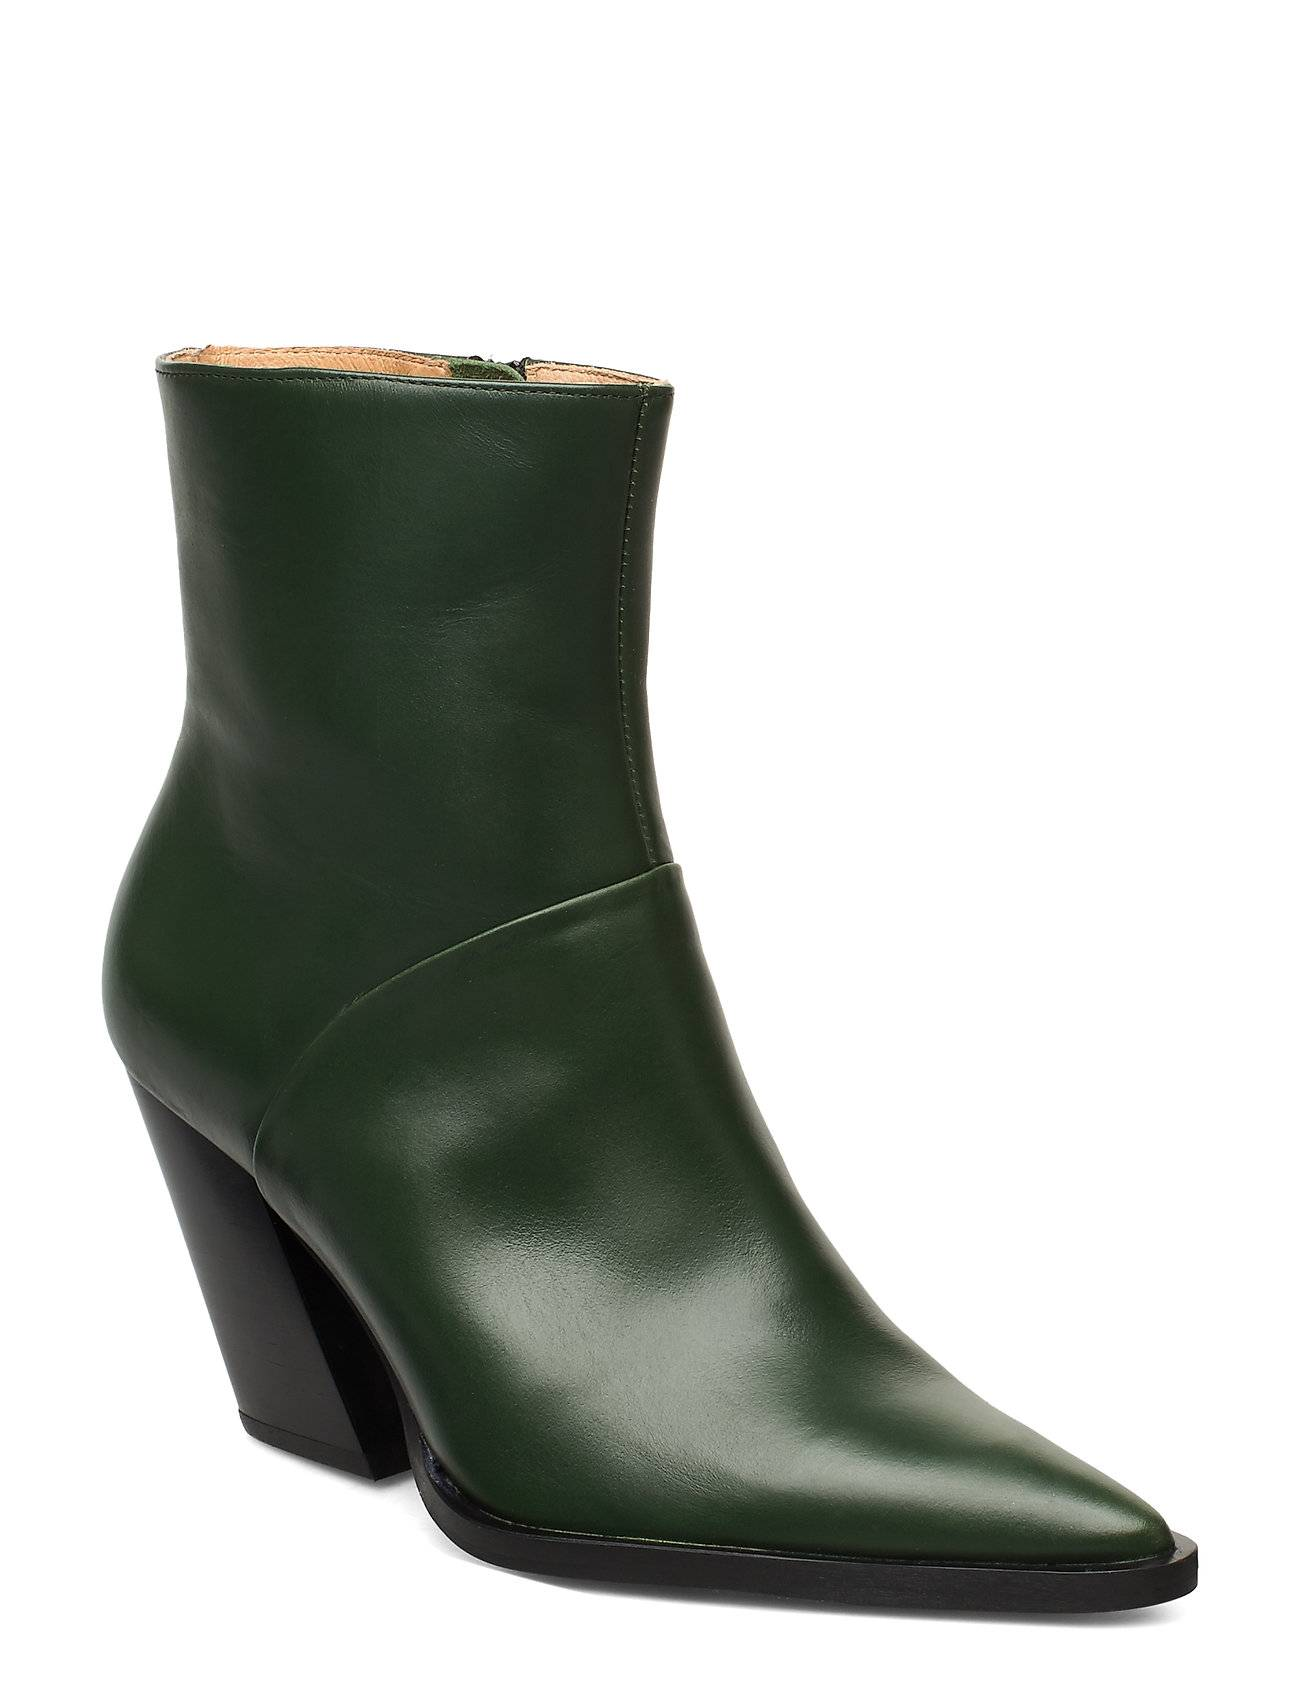 ANNY NORD Escape From The West Ankle Boot Shoes Boots Ankle Boots Ankle Boot - Heel Vihreä ANNY NORD